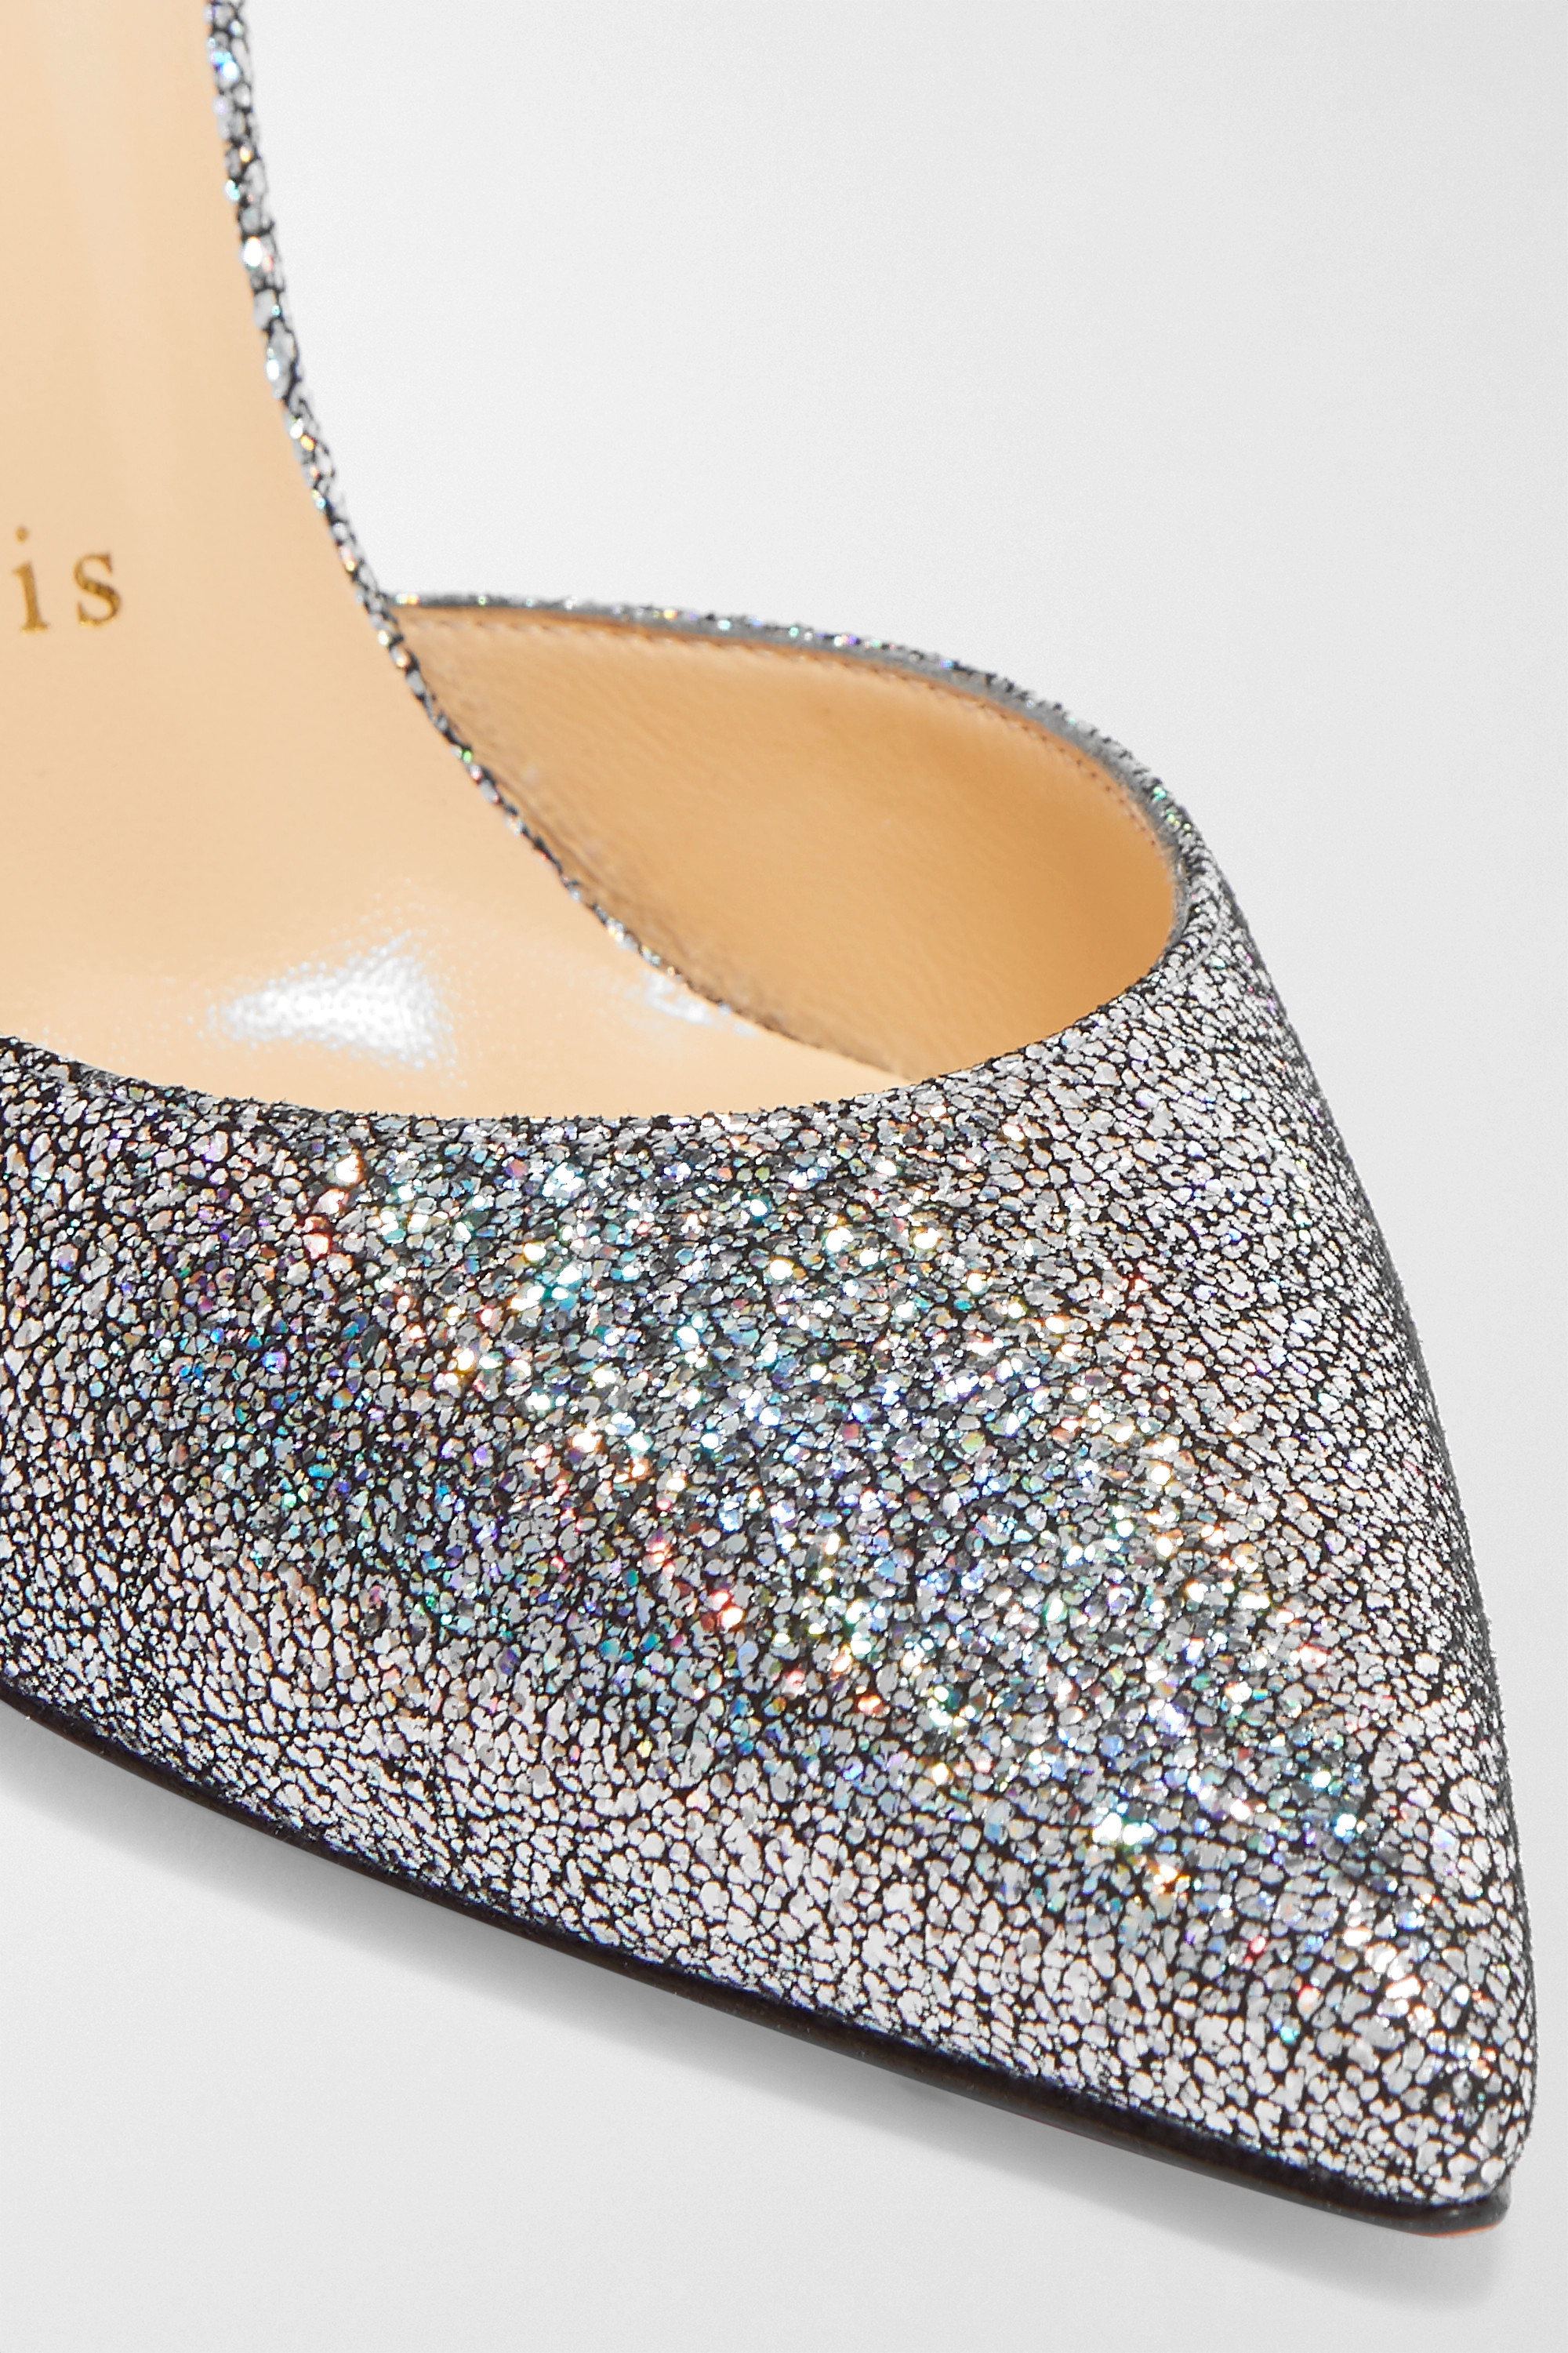 Christian Louboutin Iriza 100 metallic coated leather pumps